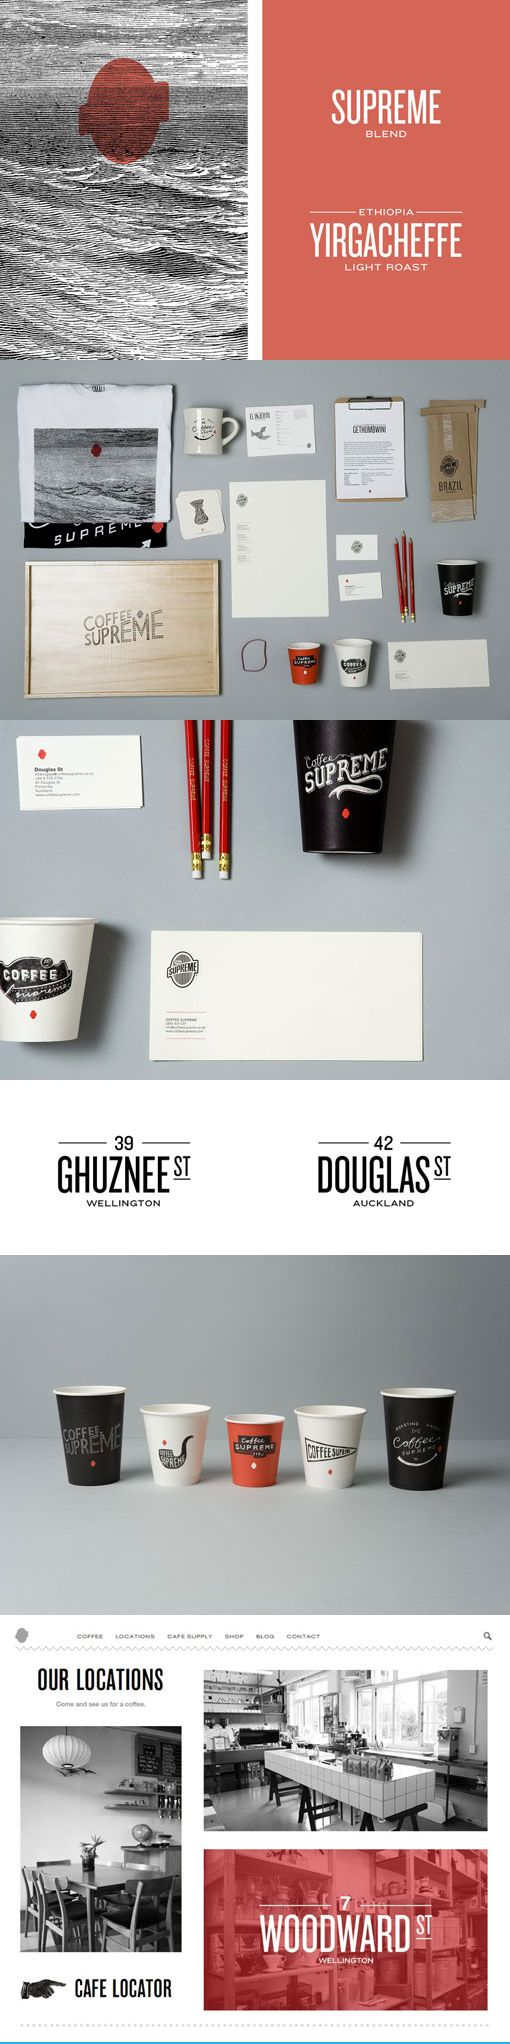 Coffee Supreme Re-Brand | Designer: Hardhat Design the whole #packaging #branding #marketing story PD